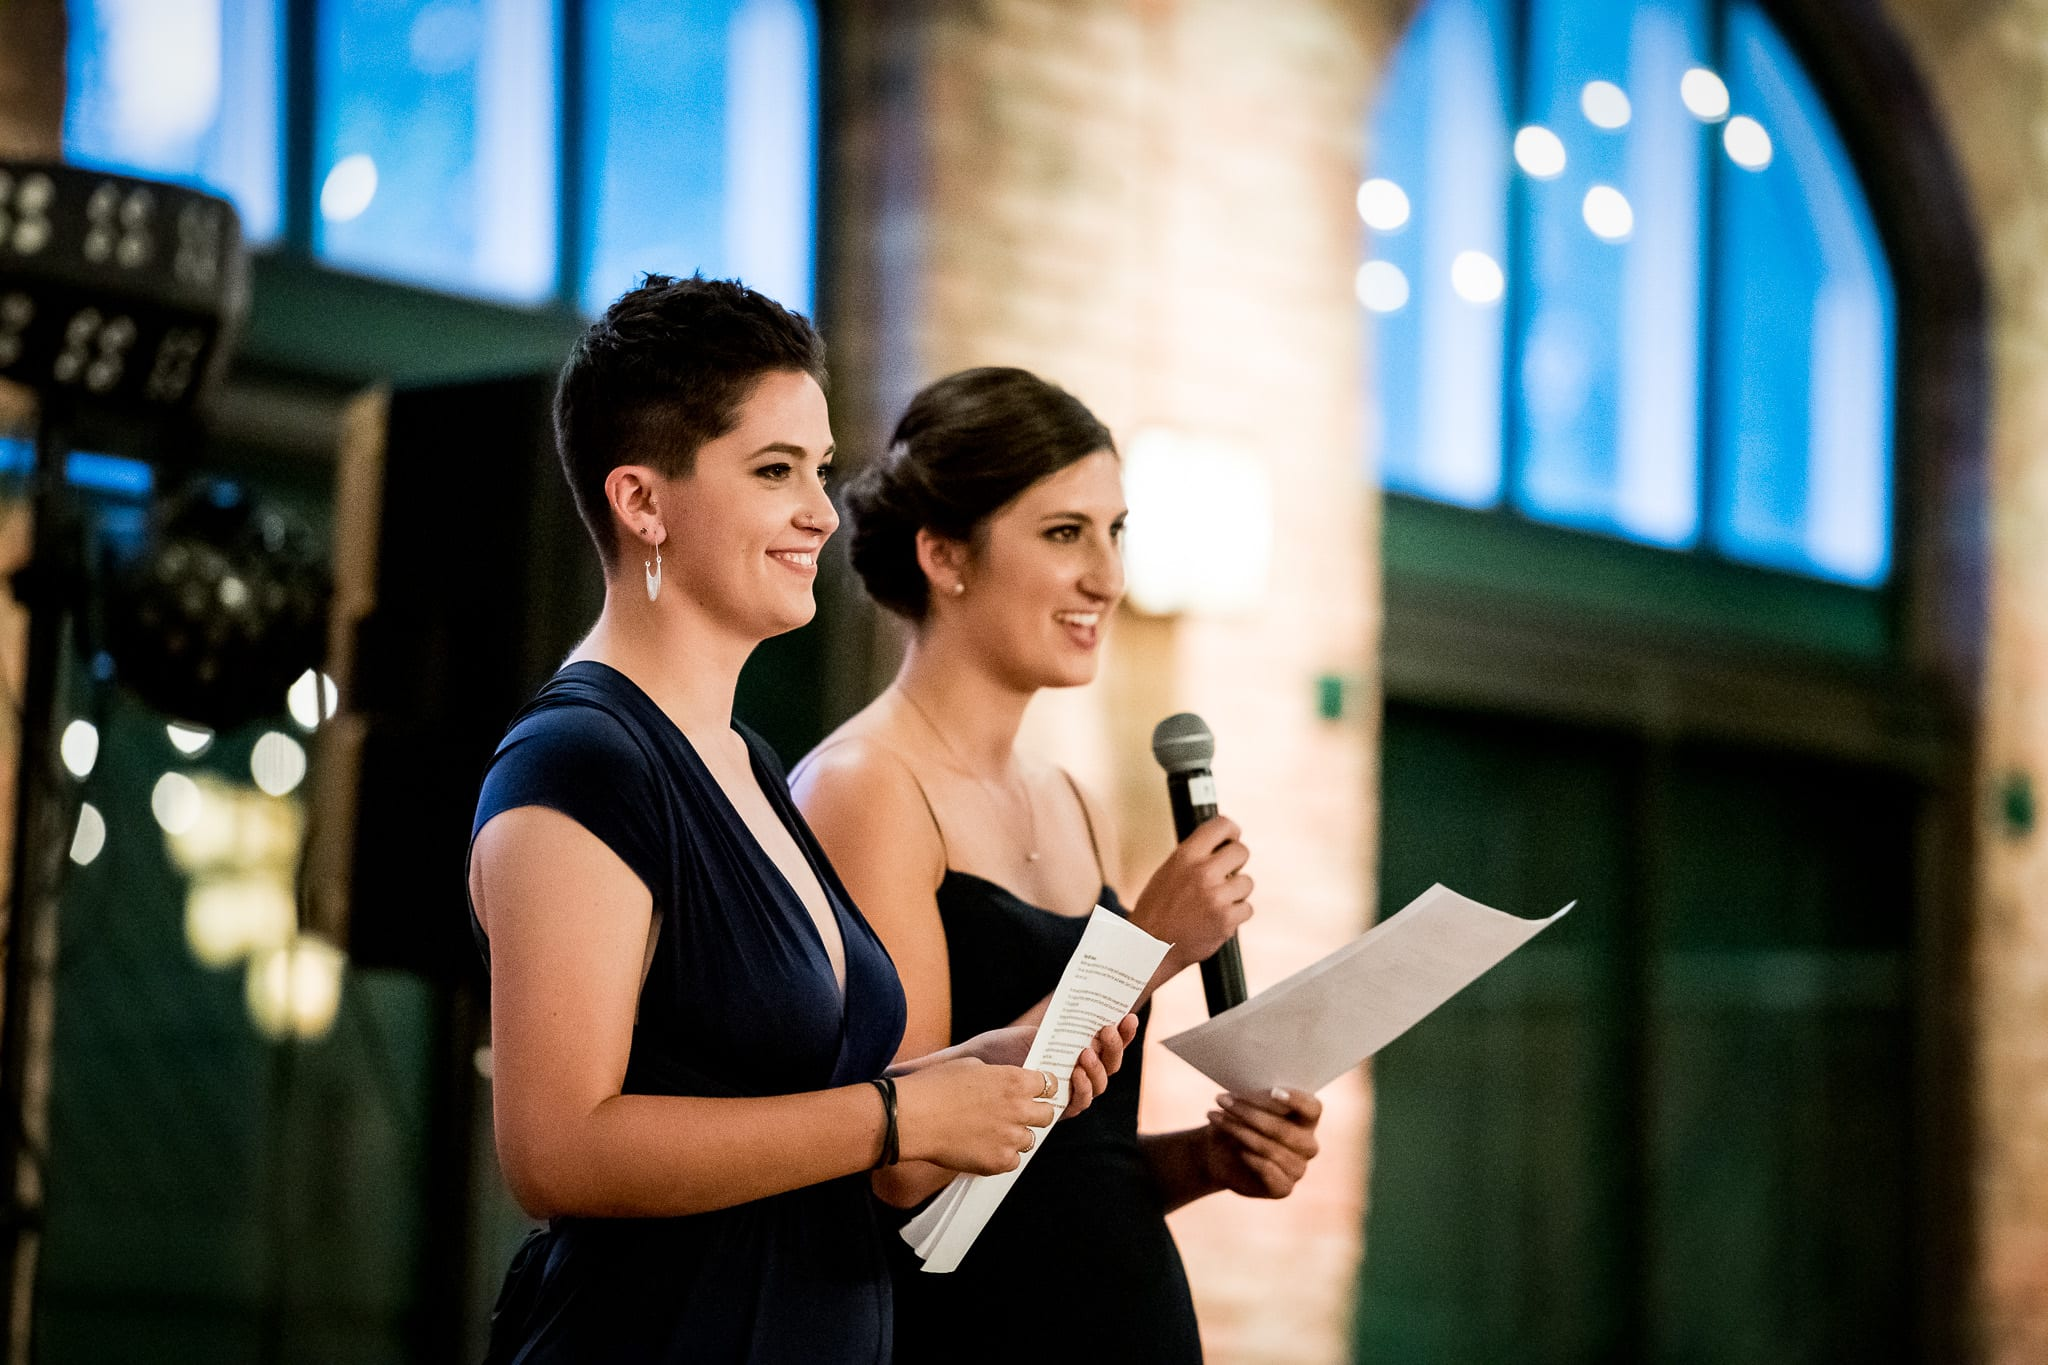 Sisters give their speech